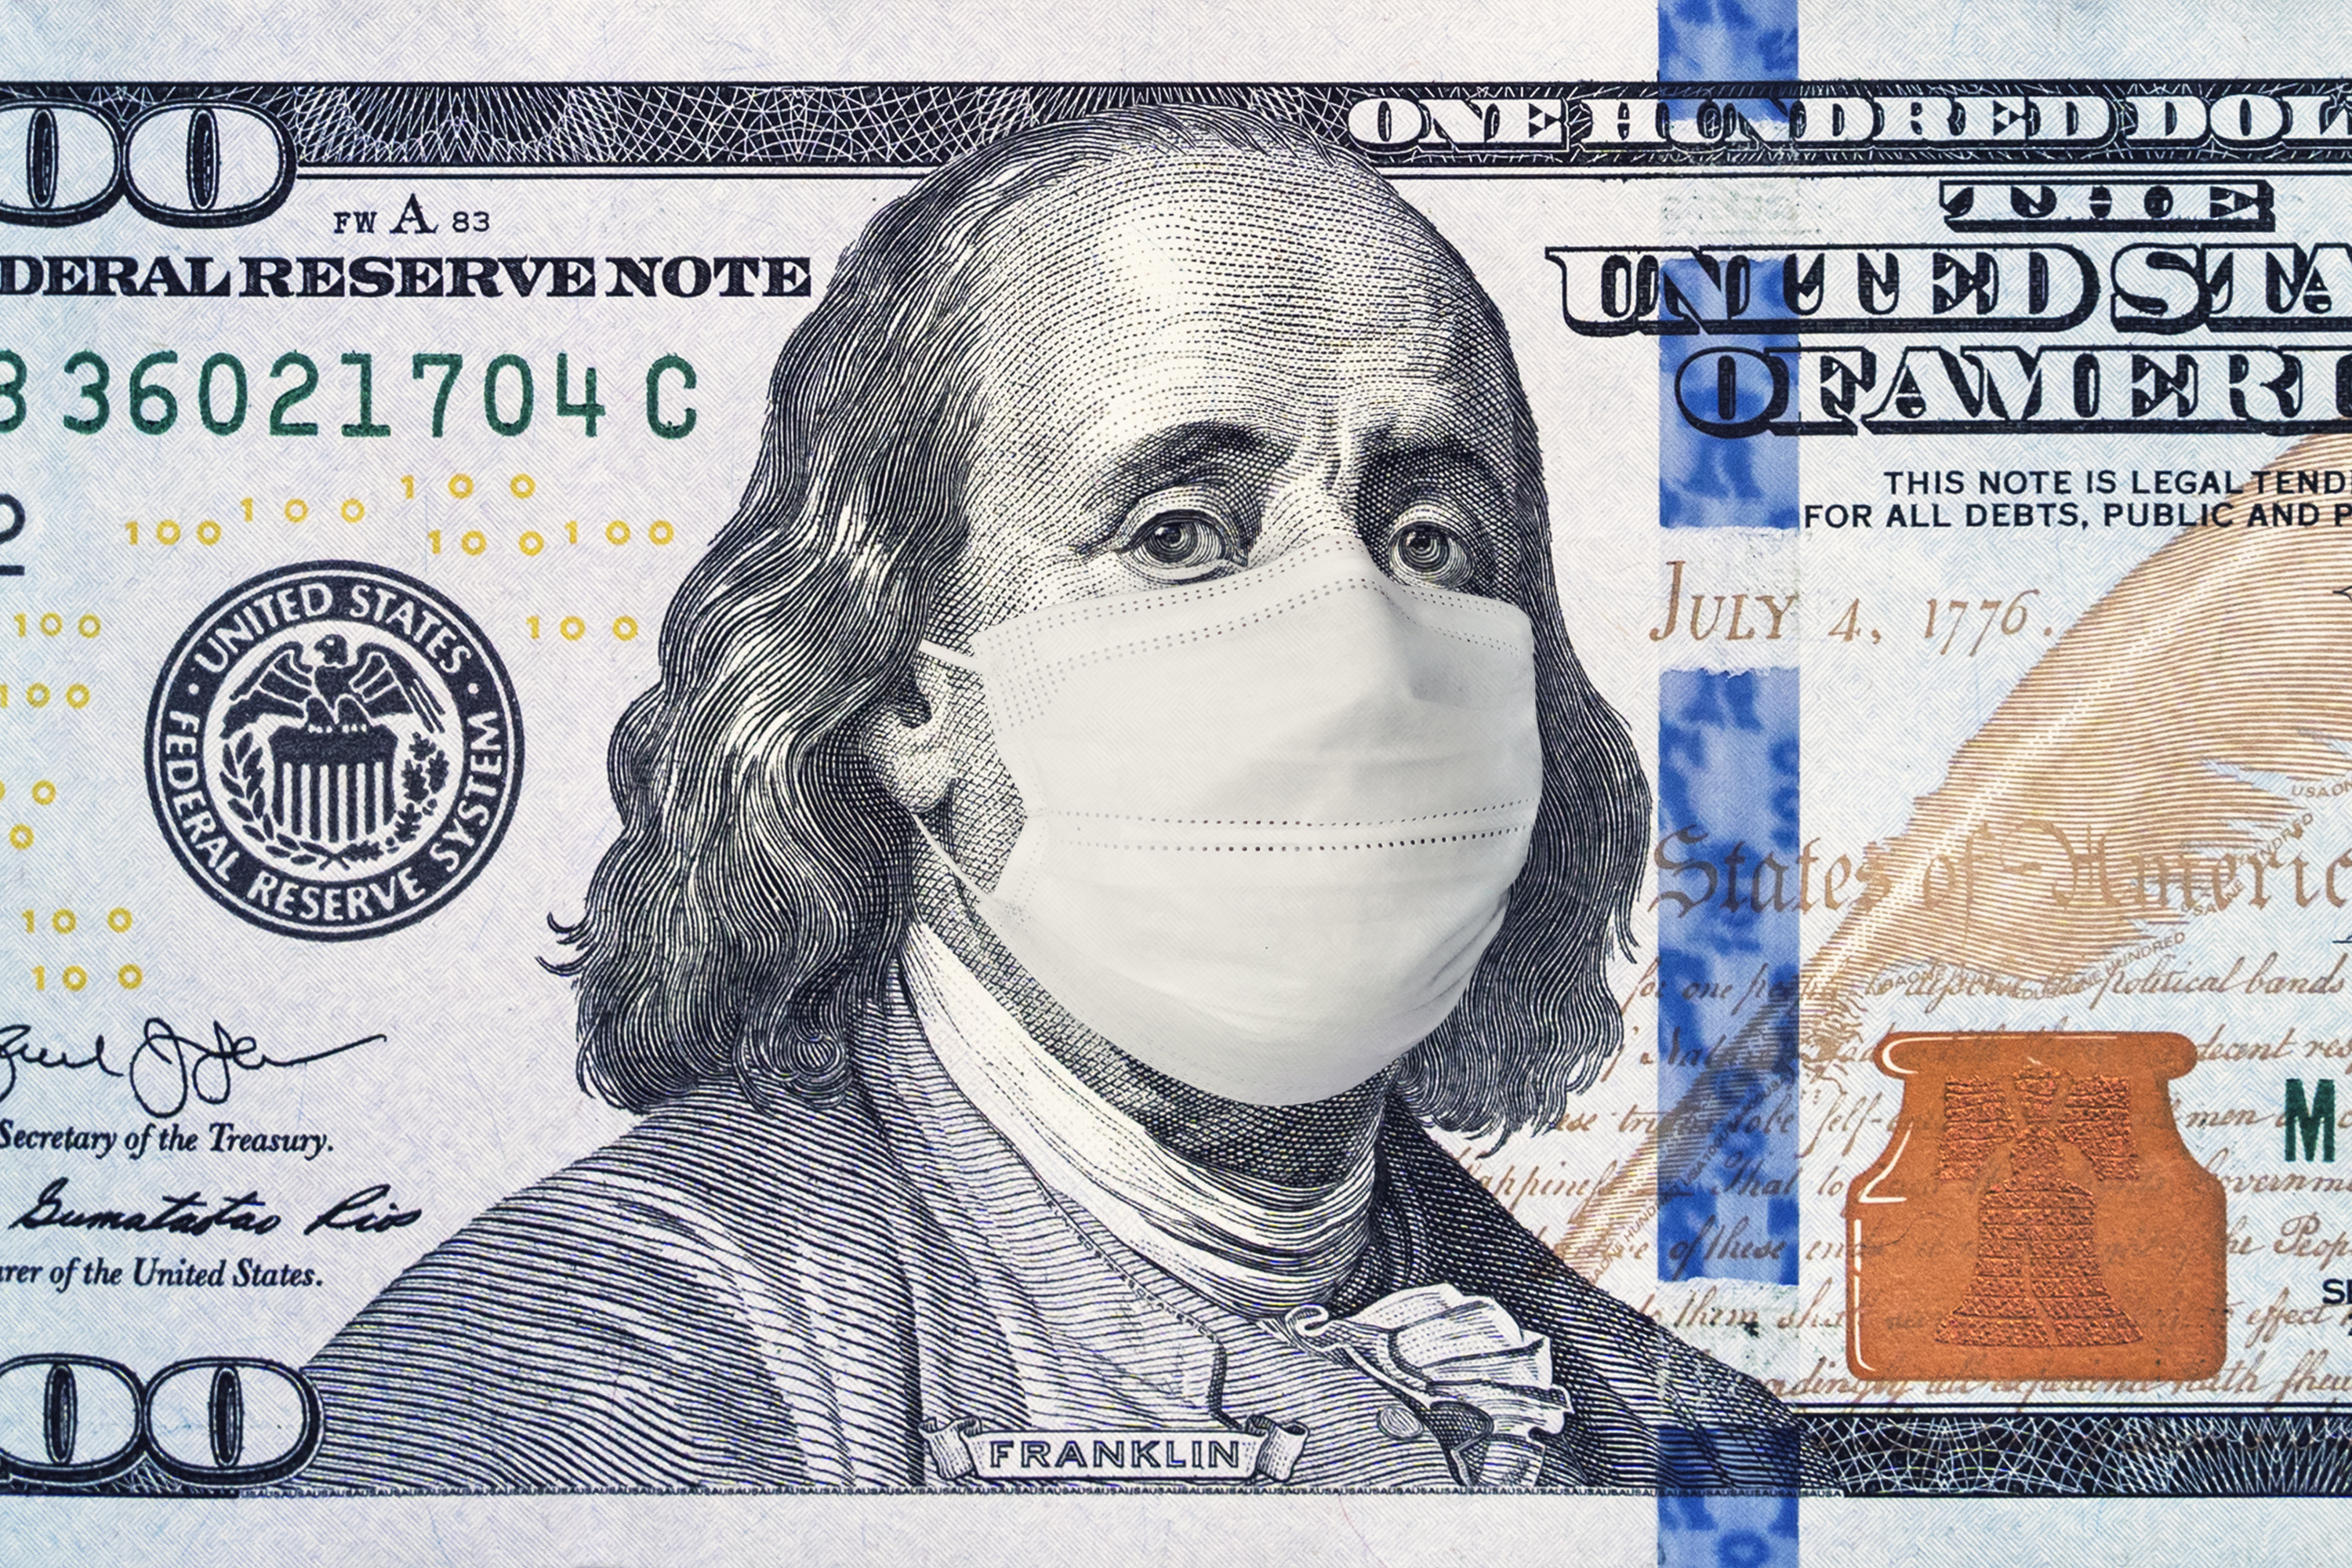 Image of Ben Franklin on the US $100 bill with a face mask on.